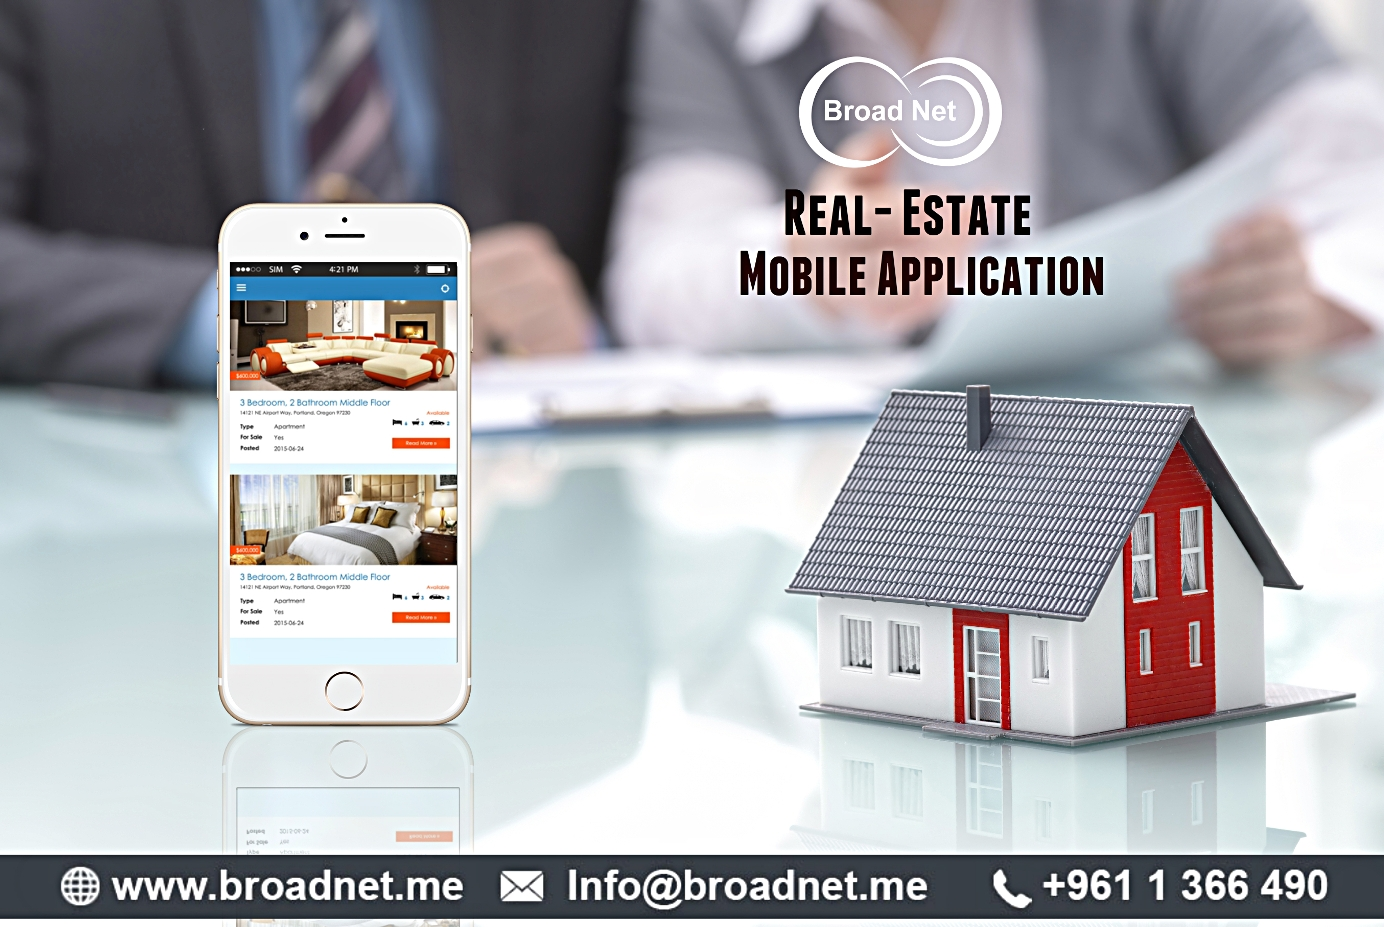 BroadNet Technologies - A Company at the Cutting-edge of Developing top Real Estate Mobile Apps